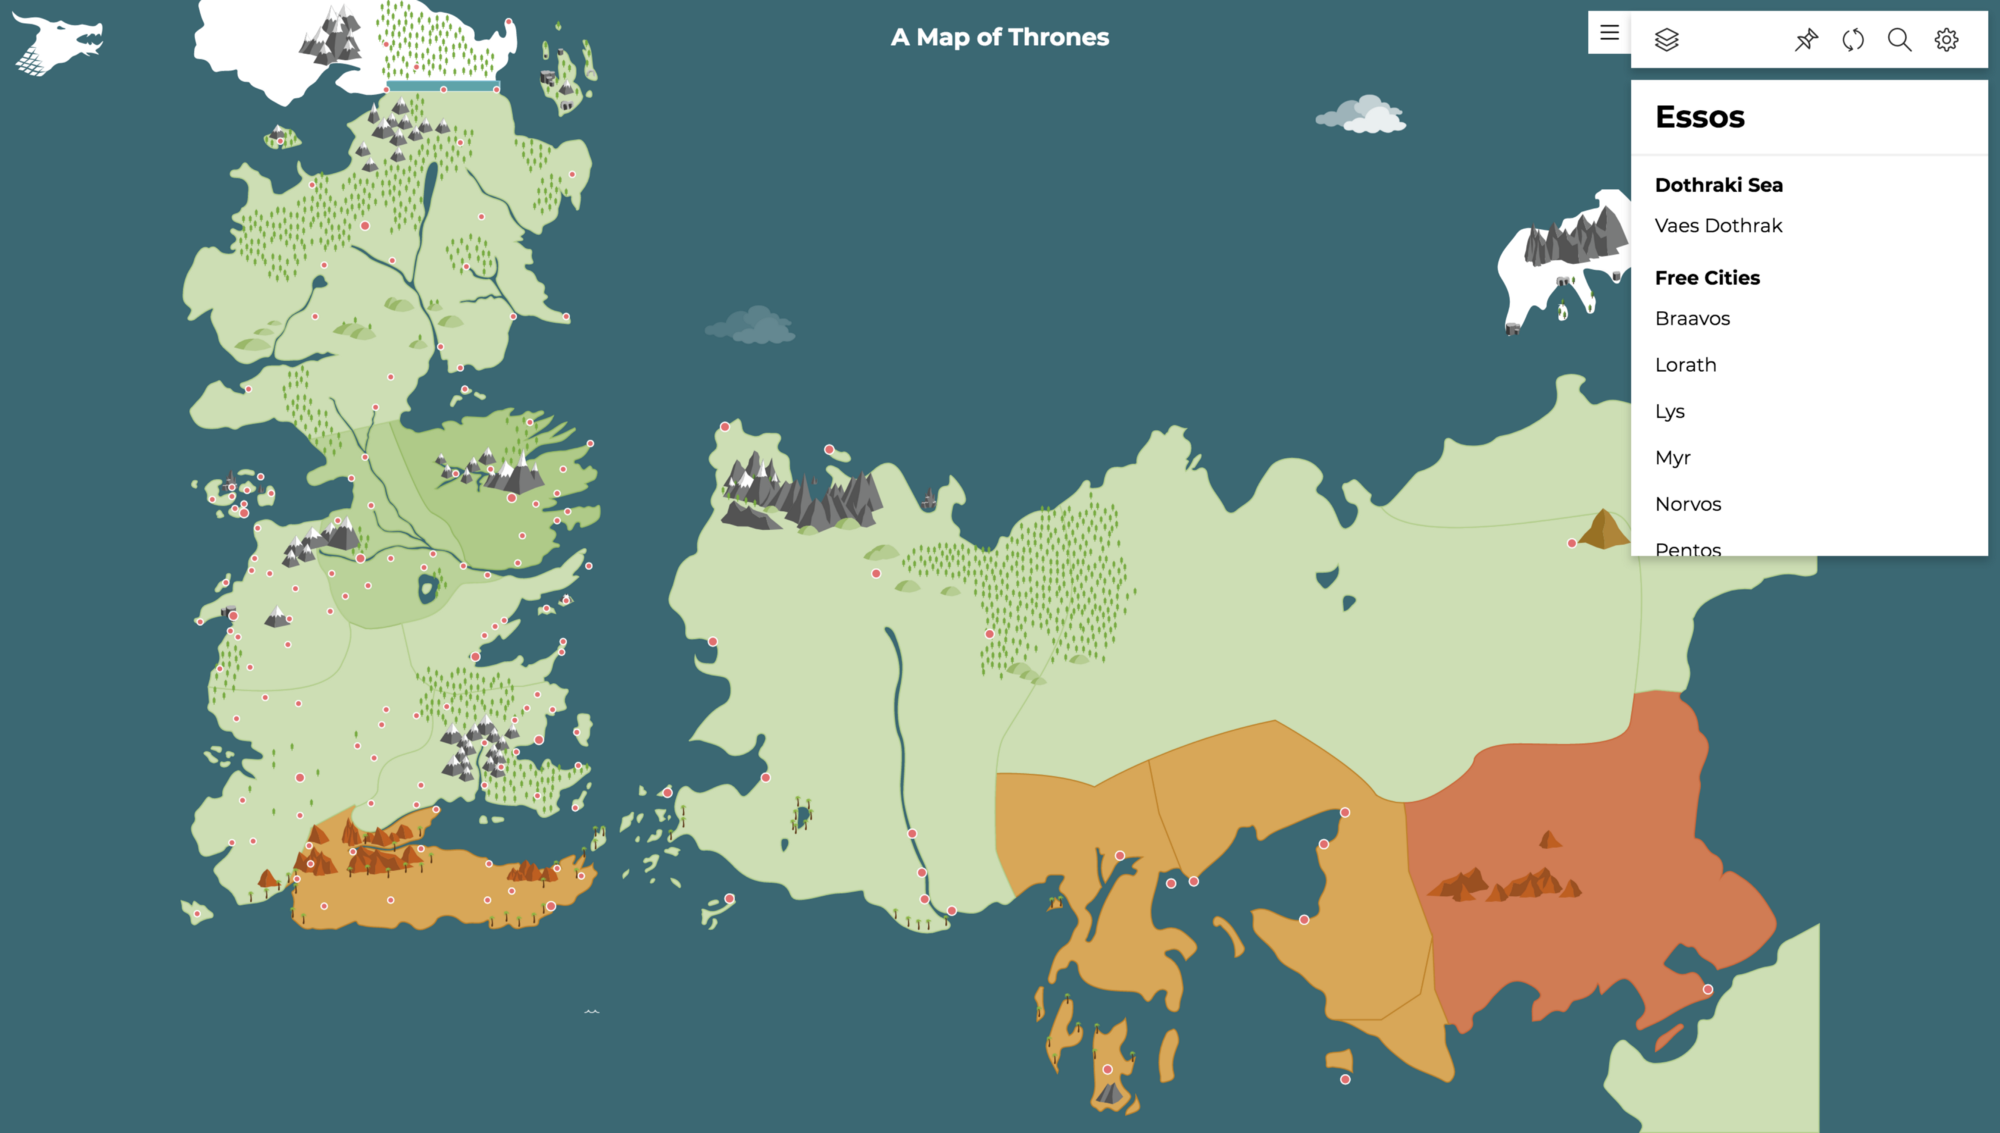 Interactive Westeros Map map of europe 1900 on walking dead interactive map, clay county interactive map, world of warcraft interactive map, trail of tears interactive map, dishonored interactive map, germany interactive map, forgotten realms interactive map, virginia counties interactive map, lord of the rings interactive map, battle of shiloh interactive map, fire and ice book map, pathfinder interactive map, nashville interactive map, clash of kings map, whistler village interactive map, crew game map, h1z1 interactive map, ice and fire world map, virginia tech interactive map, guild wars 2 interactive map,